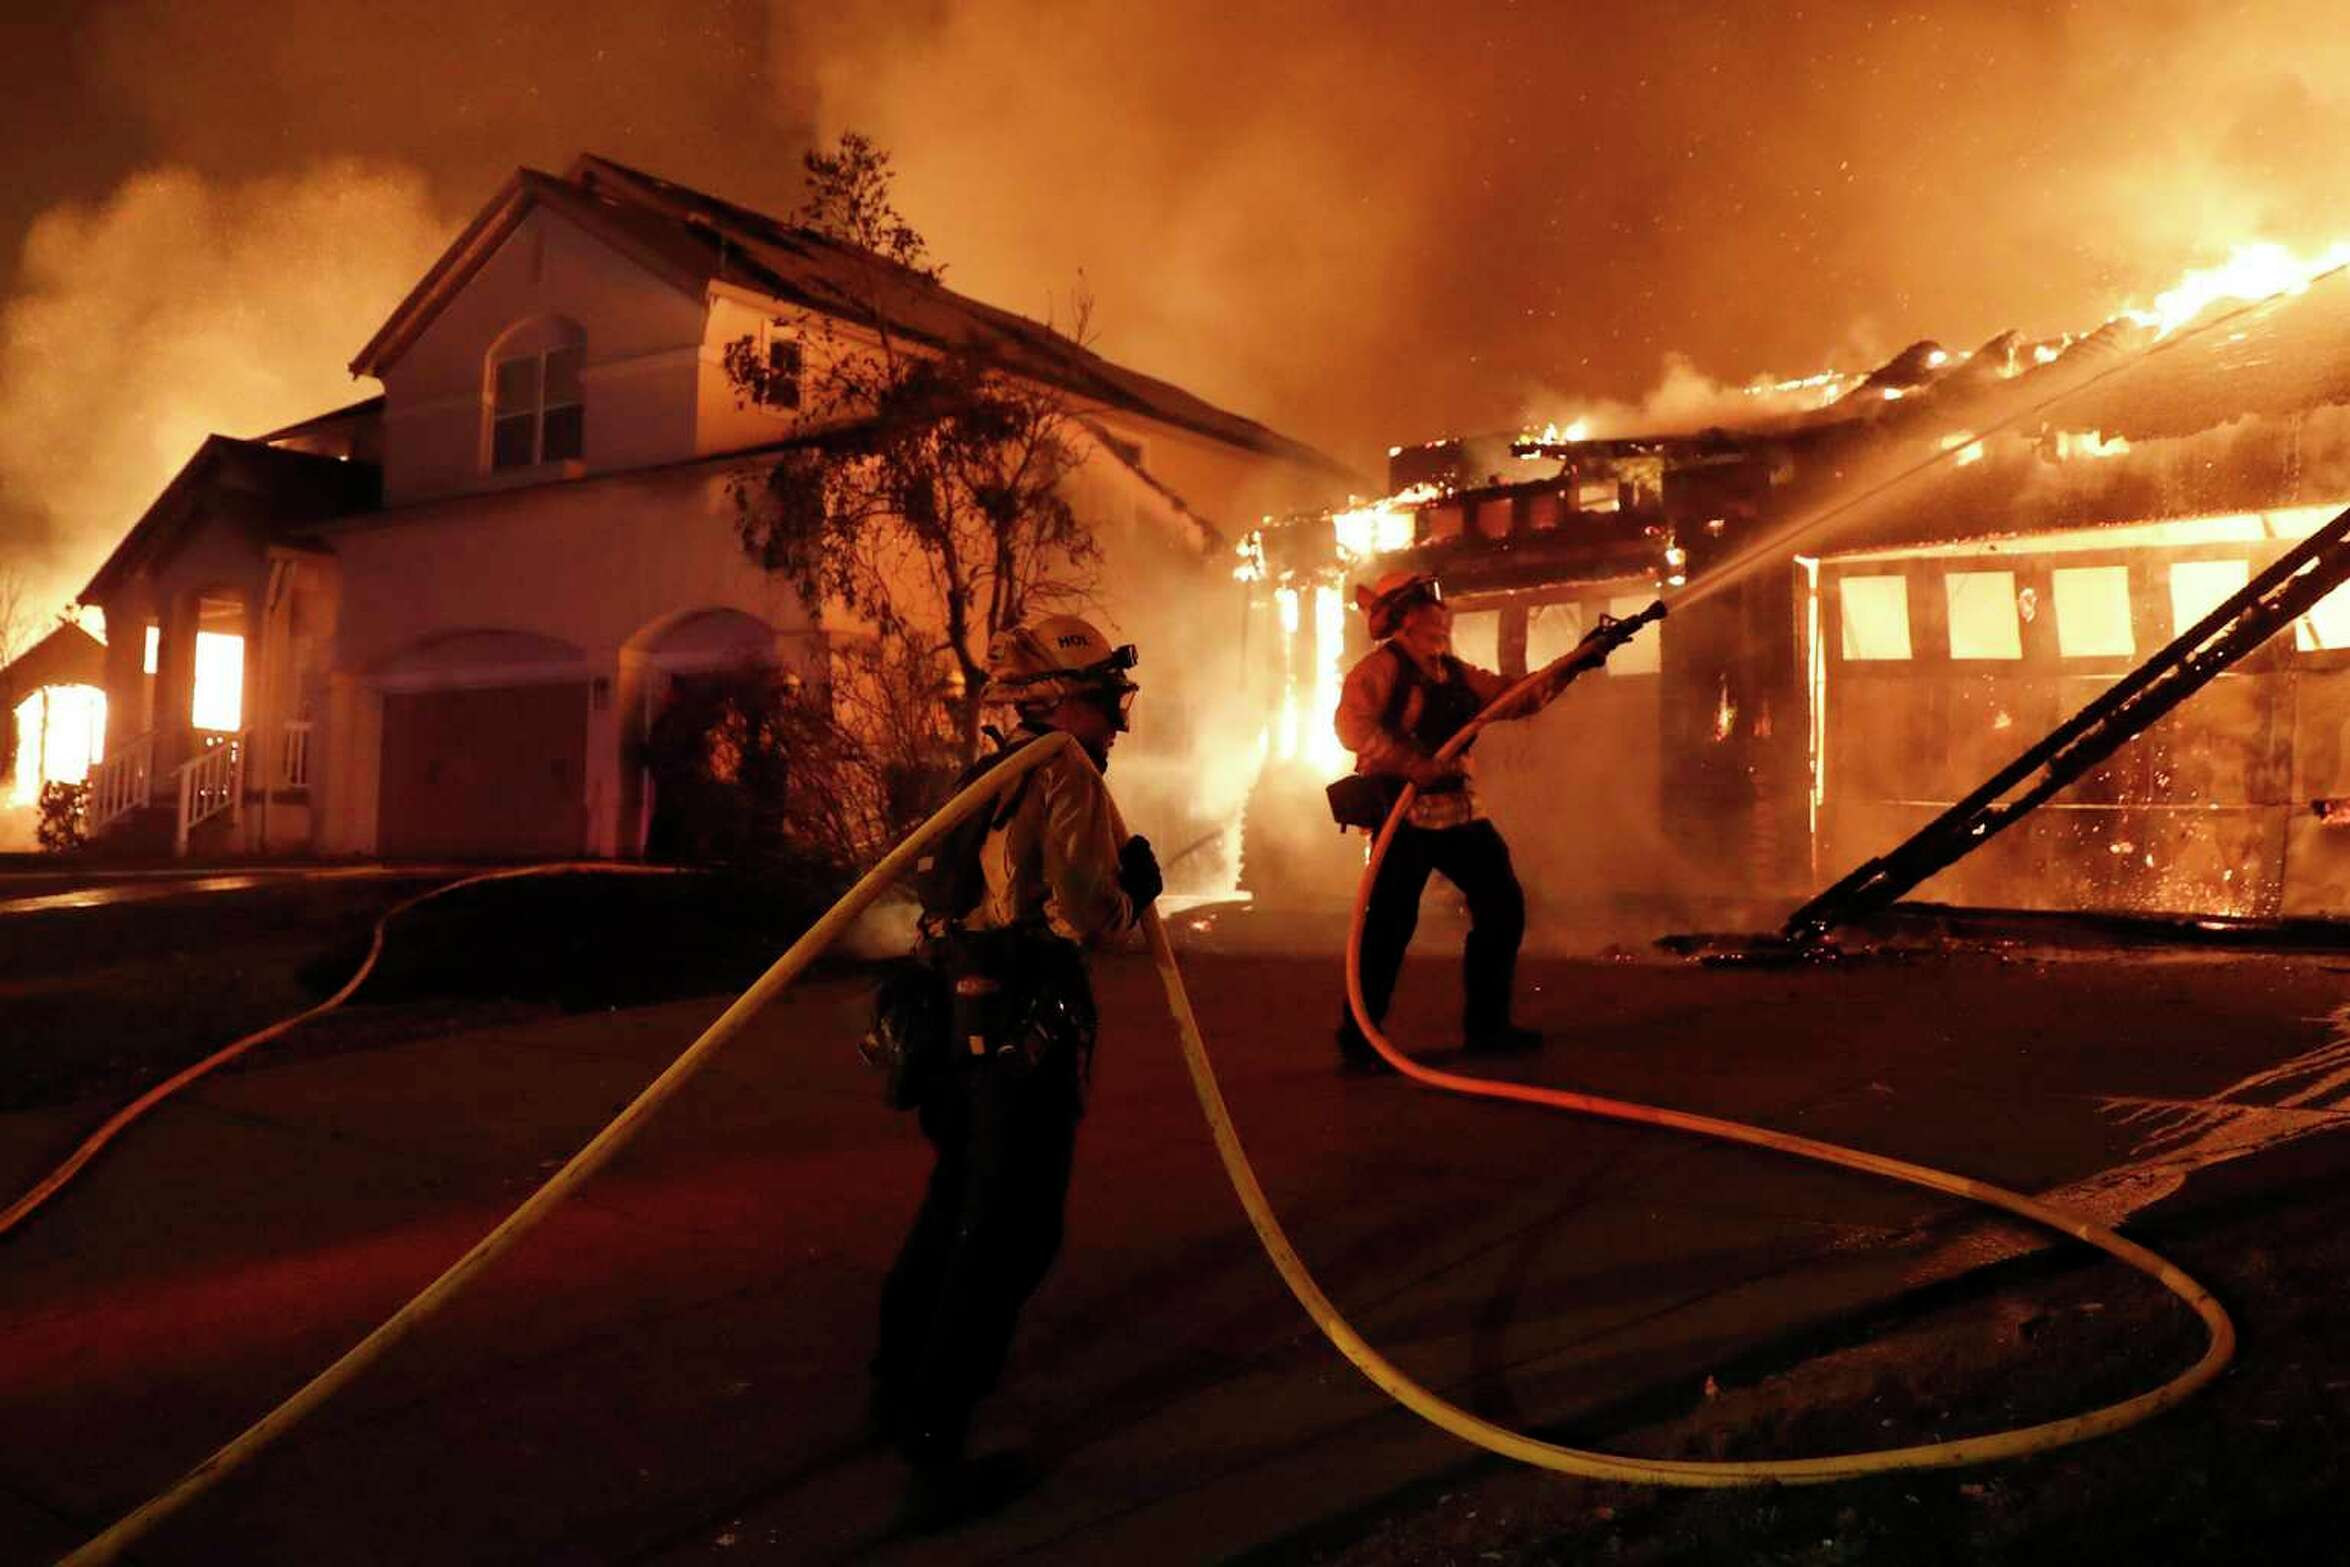 Firefighters try to keep house fires from spreading on Mountain Hawk Way as the Shady Fire burns in Skyhawk area of Santa Rosa, Calif., on Monday, September 28, 2020.